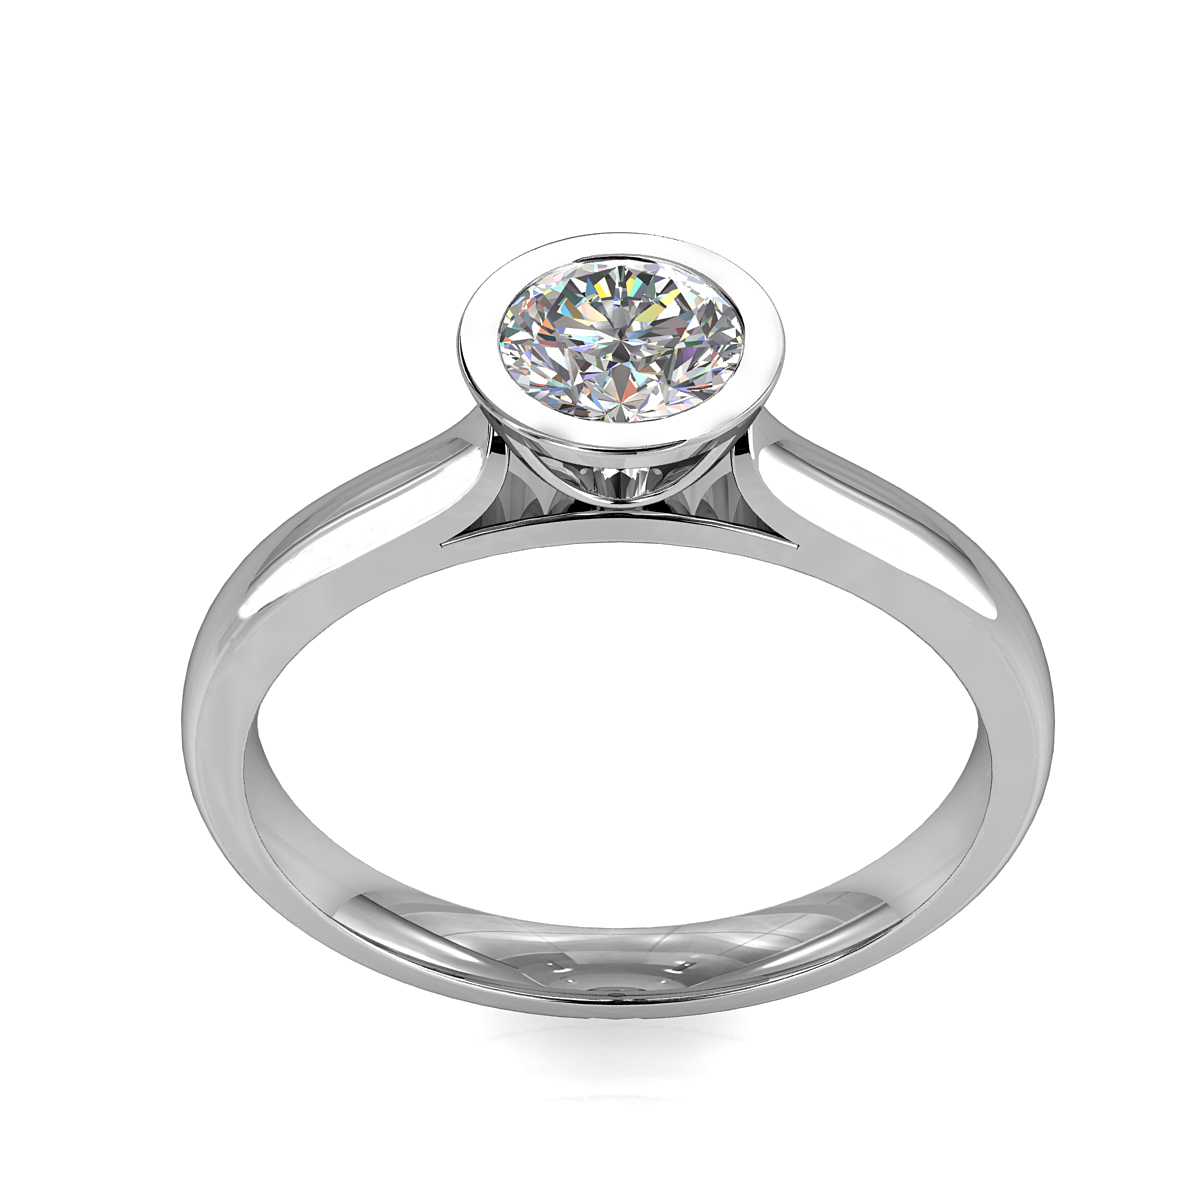 Round Brilliant Cut Solitaire Diamond Engagement Ring, Bezel Set on a Half Domed Band with Classic Open Undersetting.